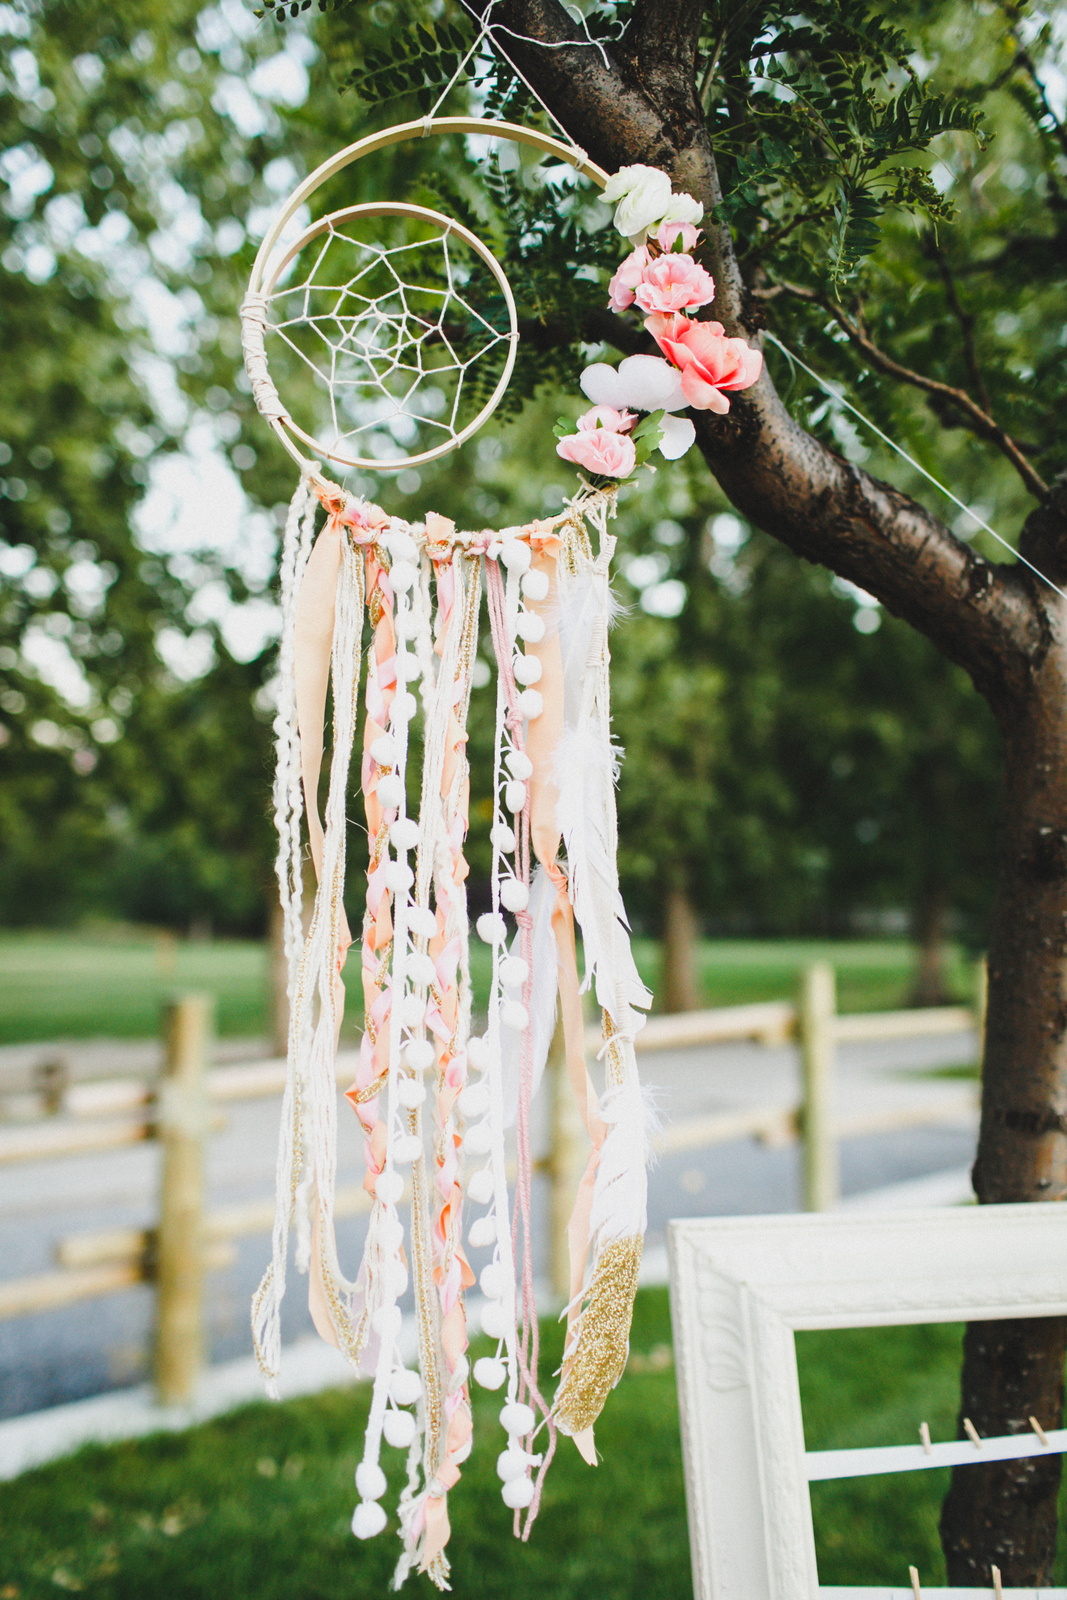 Dreamcatcher at Boho Birthday party - Photo by Summer Nicole Photo